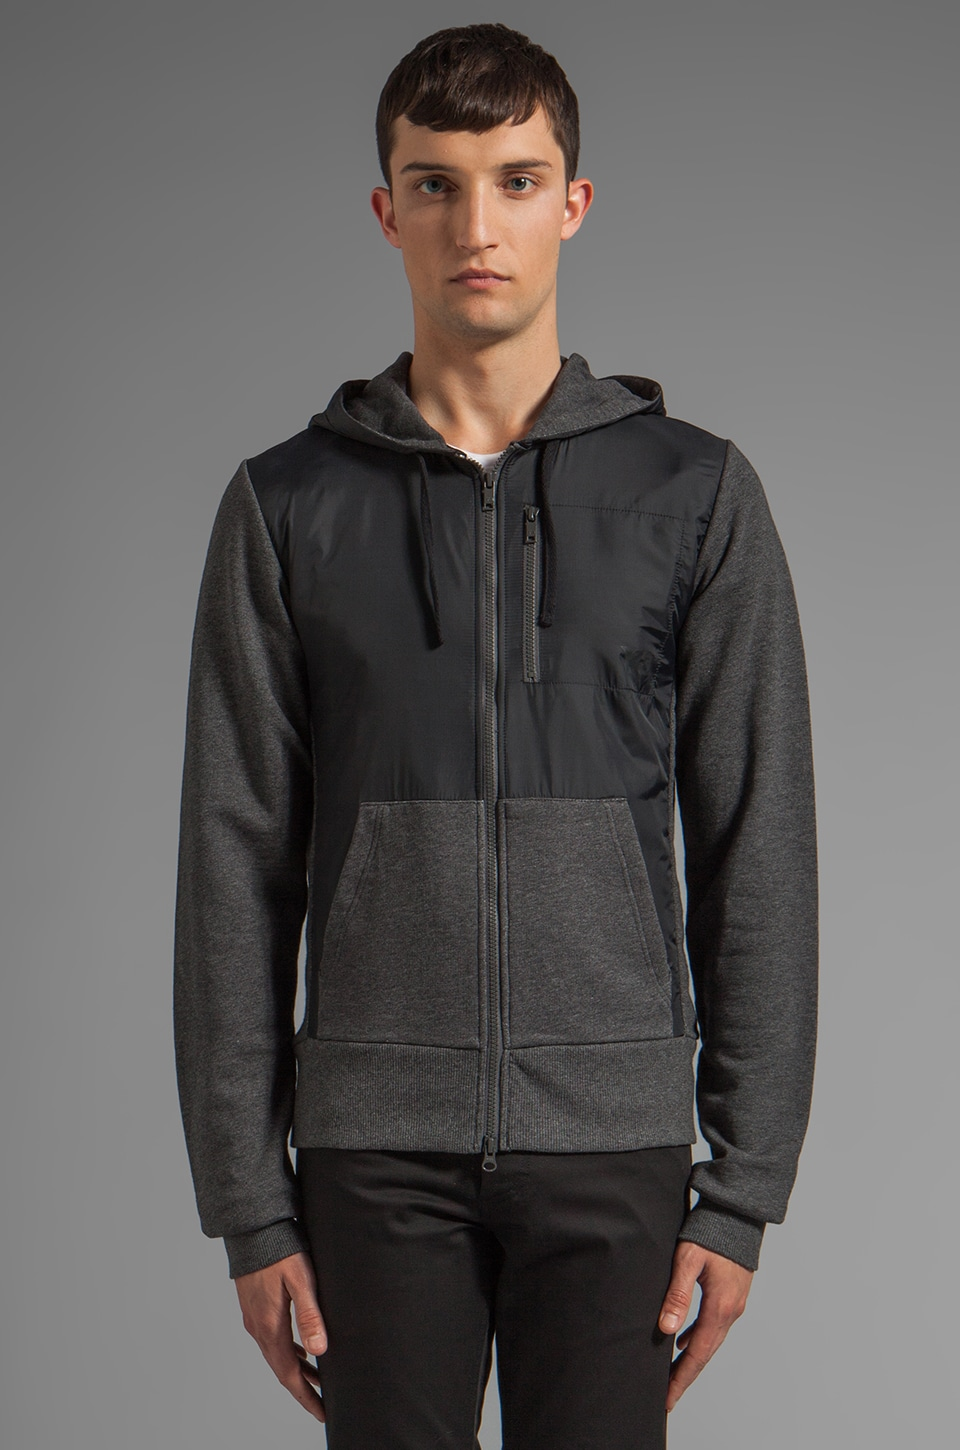 Y-3 Yohji Yamamoto Color Block Hoody in Charcoal Melange/ Black